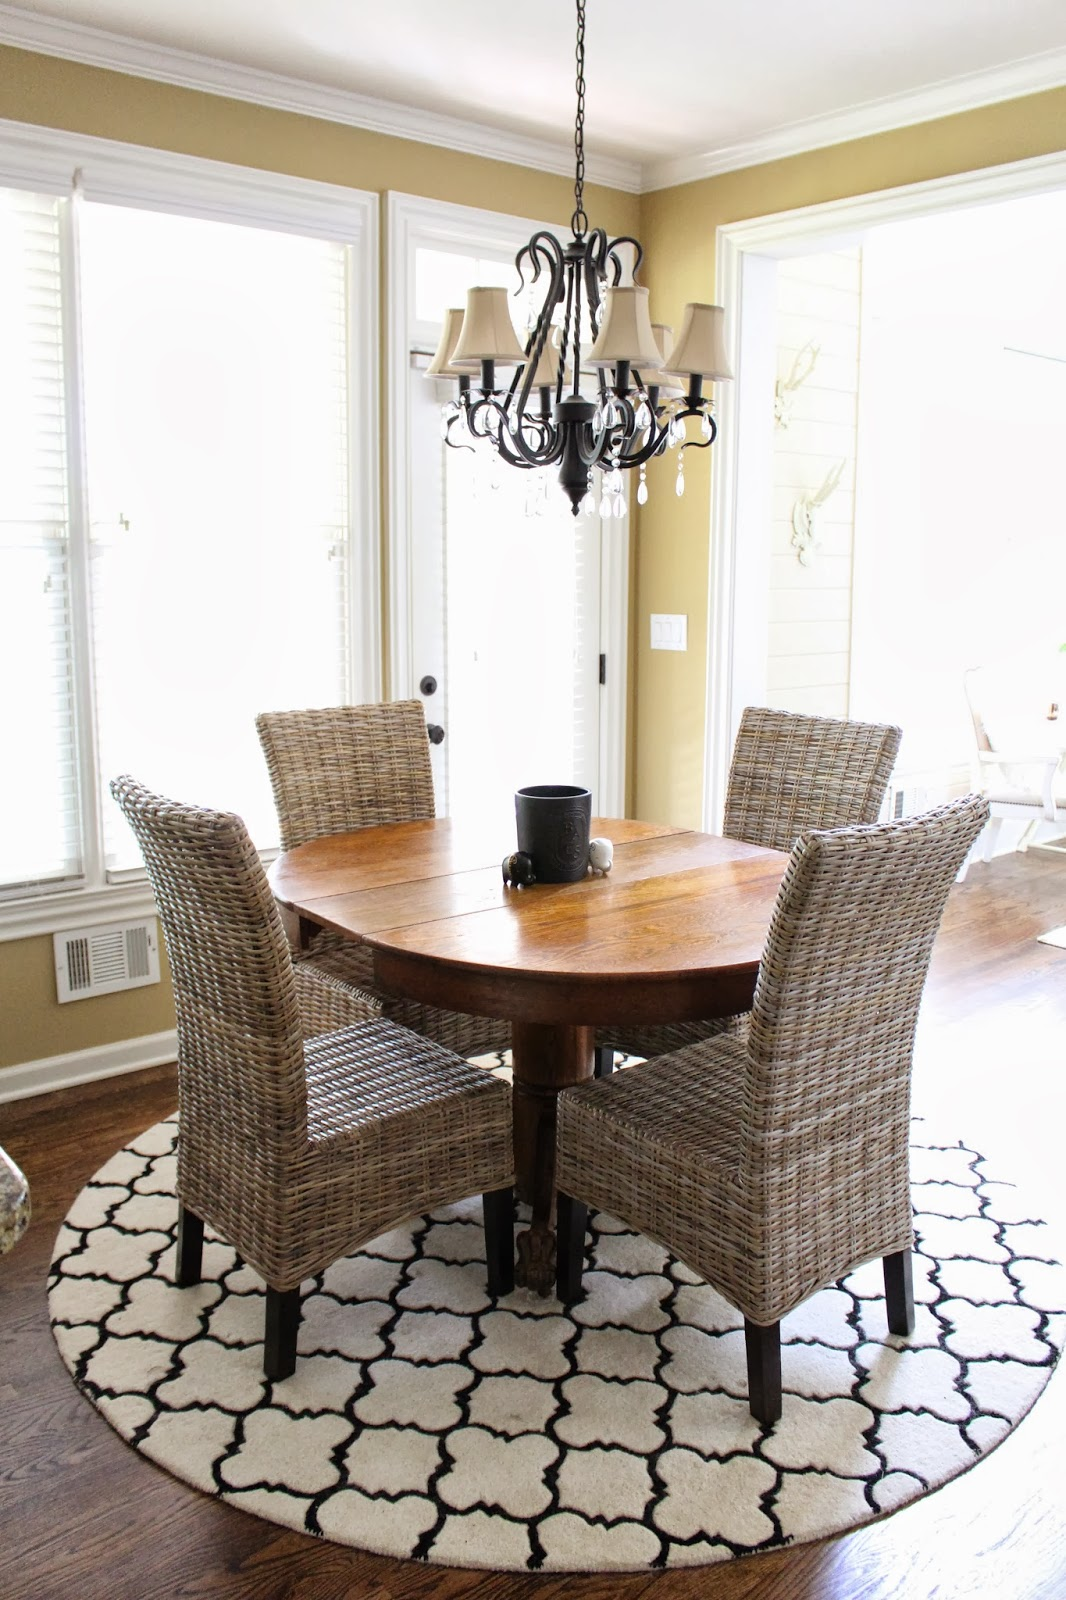 round rugs for under kitchen table | Roselawnlutheran